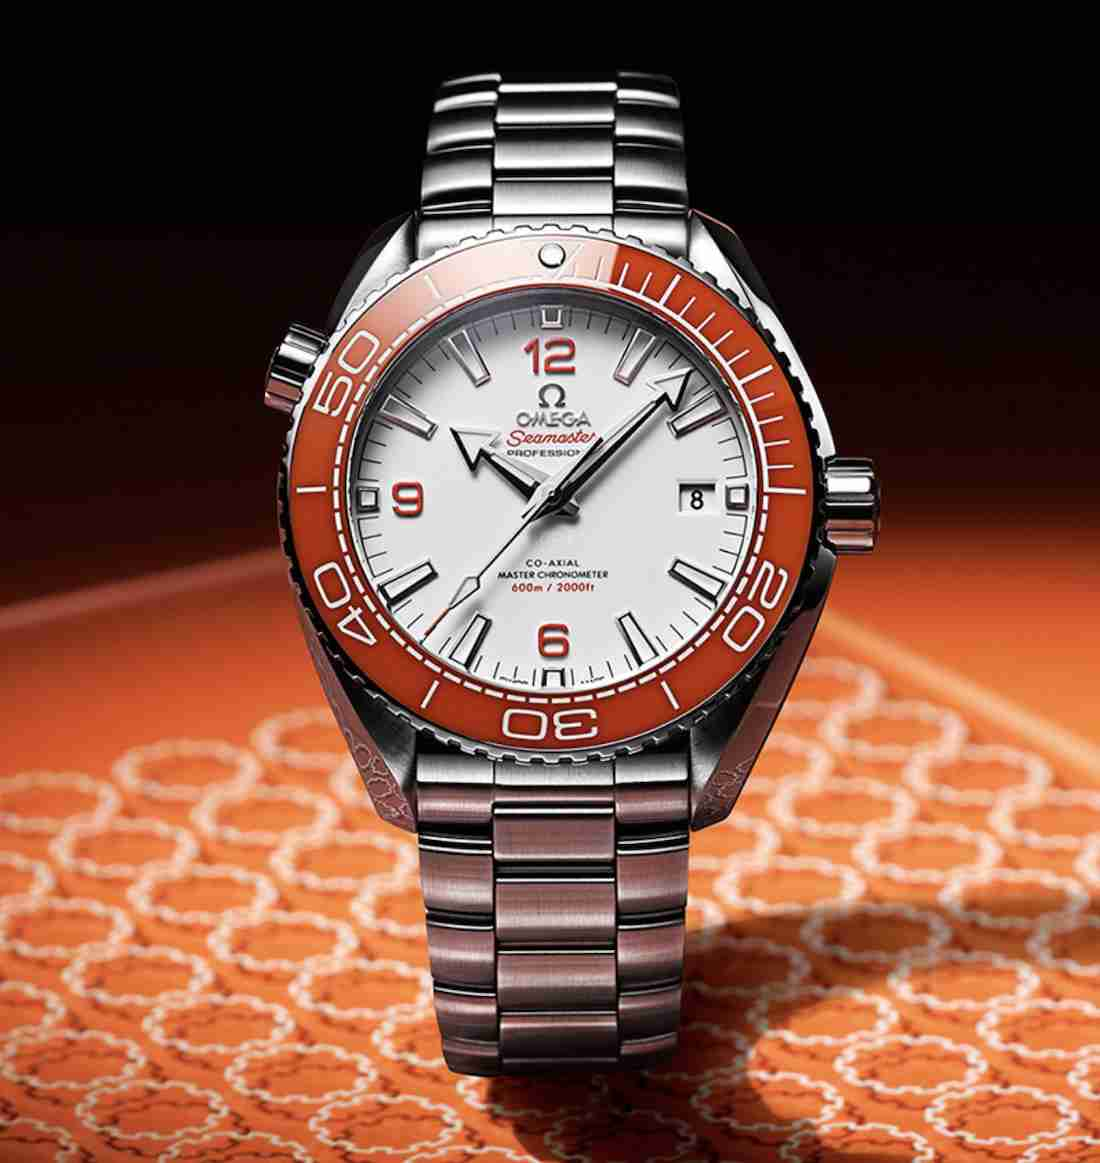 The Orange Bezel Omega Seamaster Planet Ocean 600M Replica